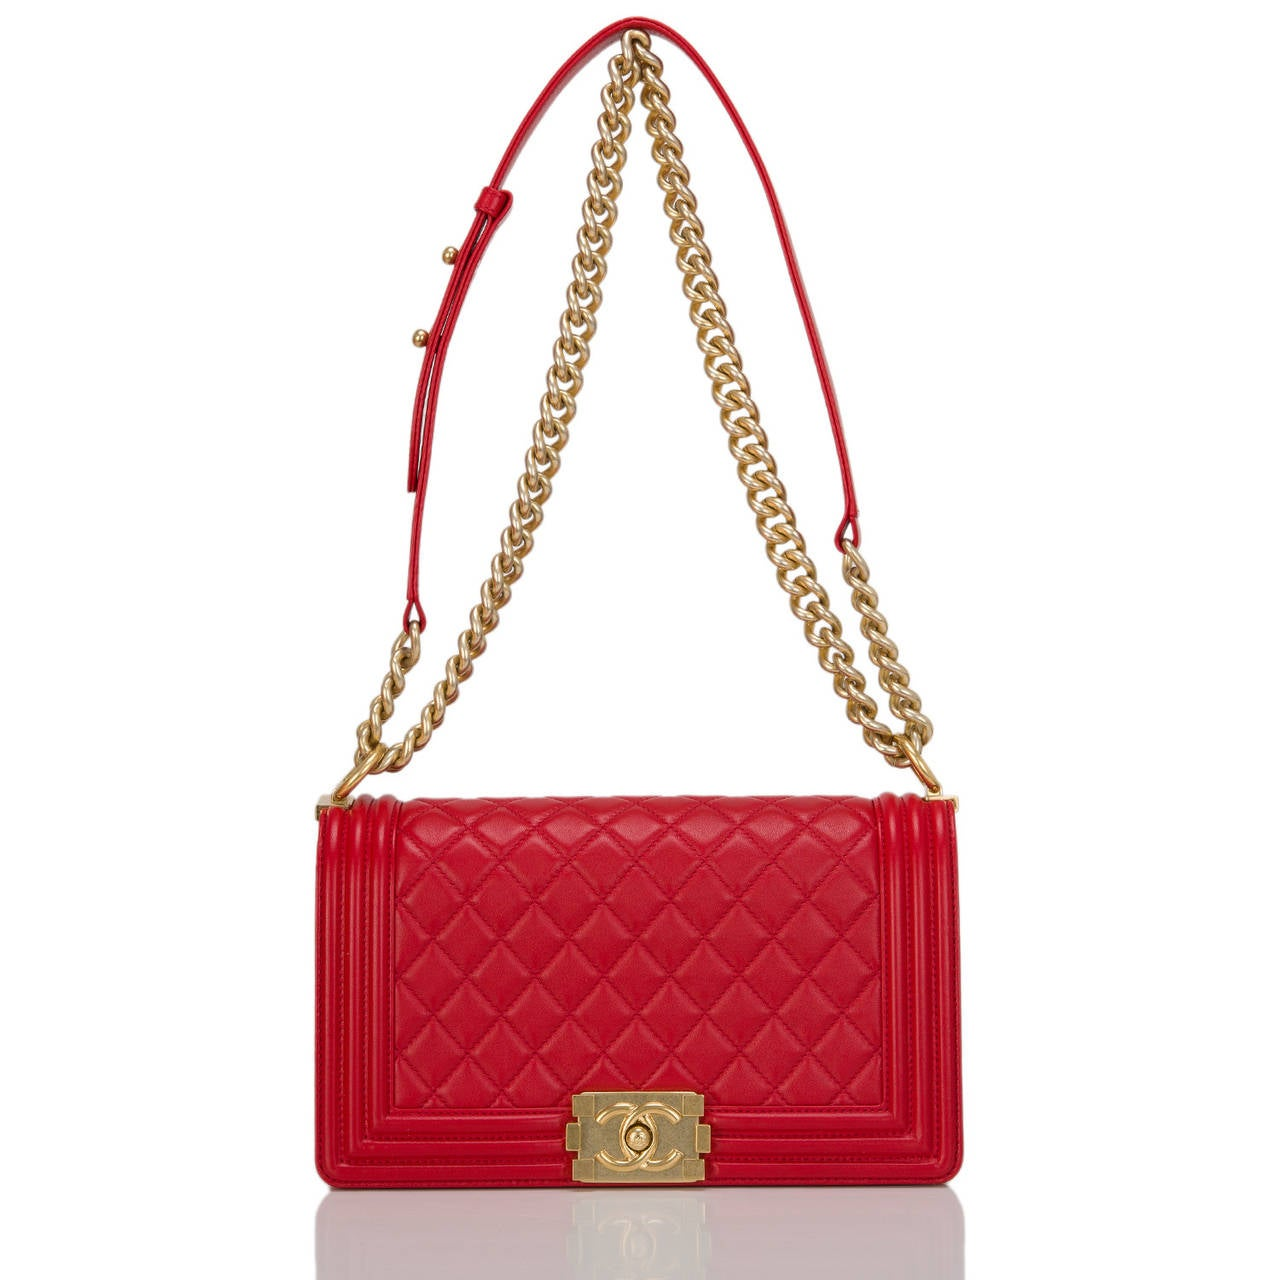 Chanel Red Quilted Lambskin Medium Boy Bag For Sale 1